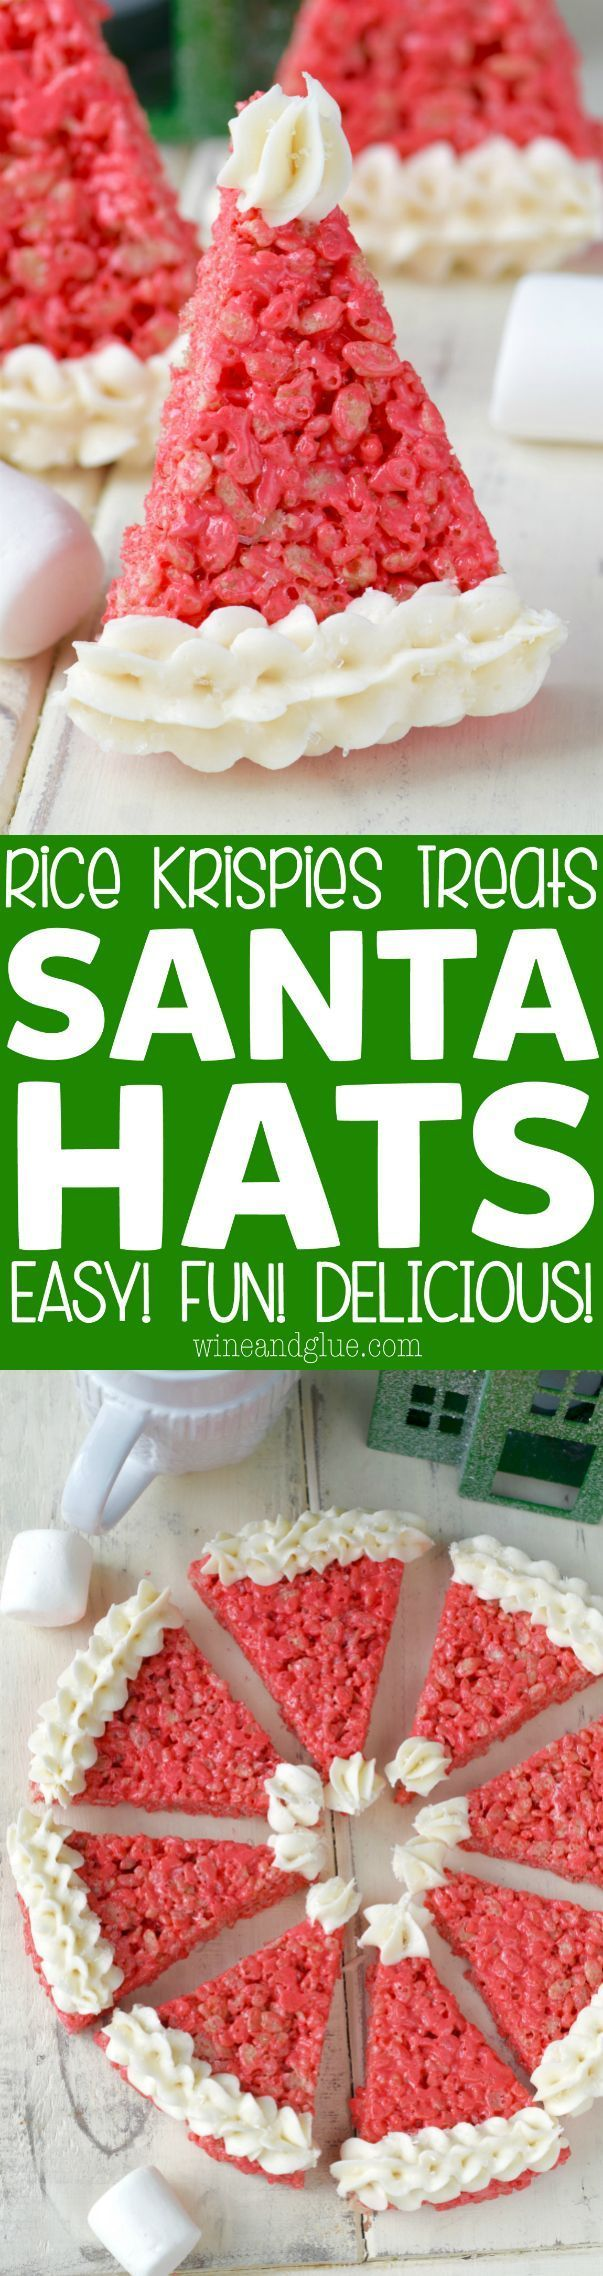 These Kellogg's® Rice Krispies® Treats Santa Hats make for such a fun easy Christmas treat!